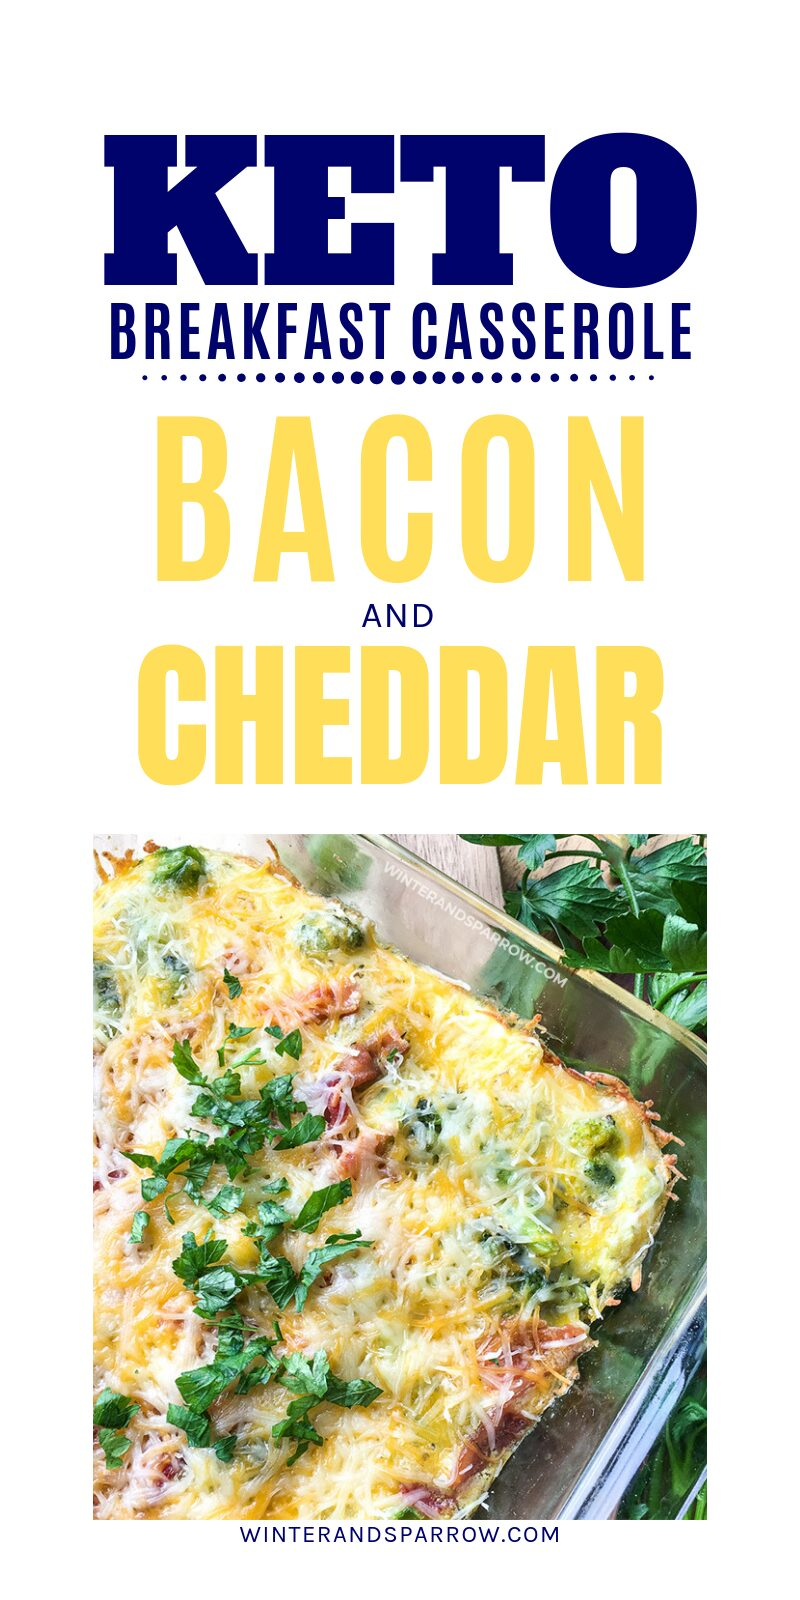 Keto Breakfast Casserole: Bacon and Cheddar [Ready In About 30 Minutes] | winterandsparrow.com #ketorecipes #easyketorecipes #ketobreakfastcasserole #ketodietrecipes